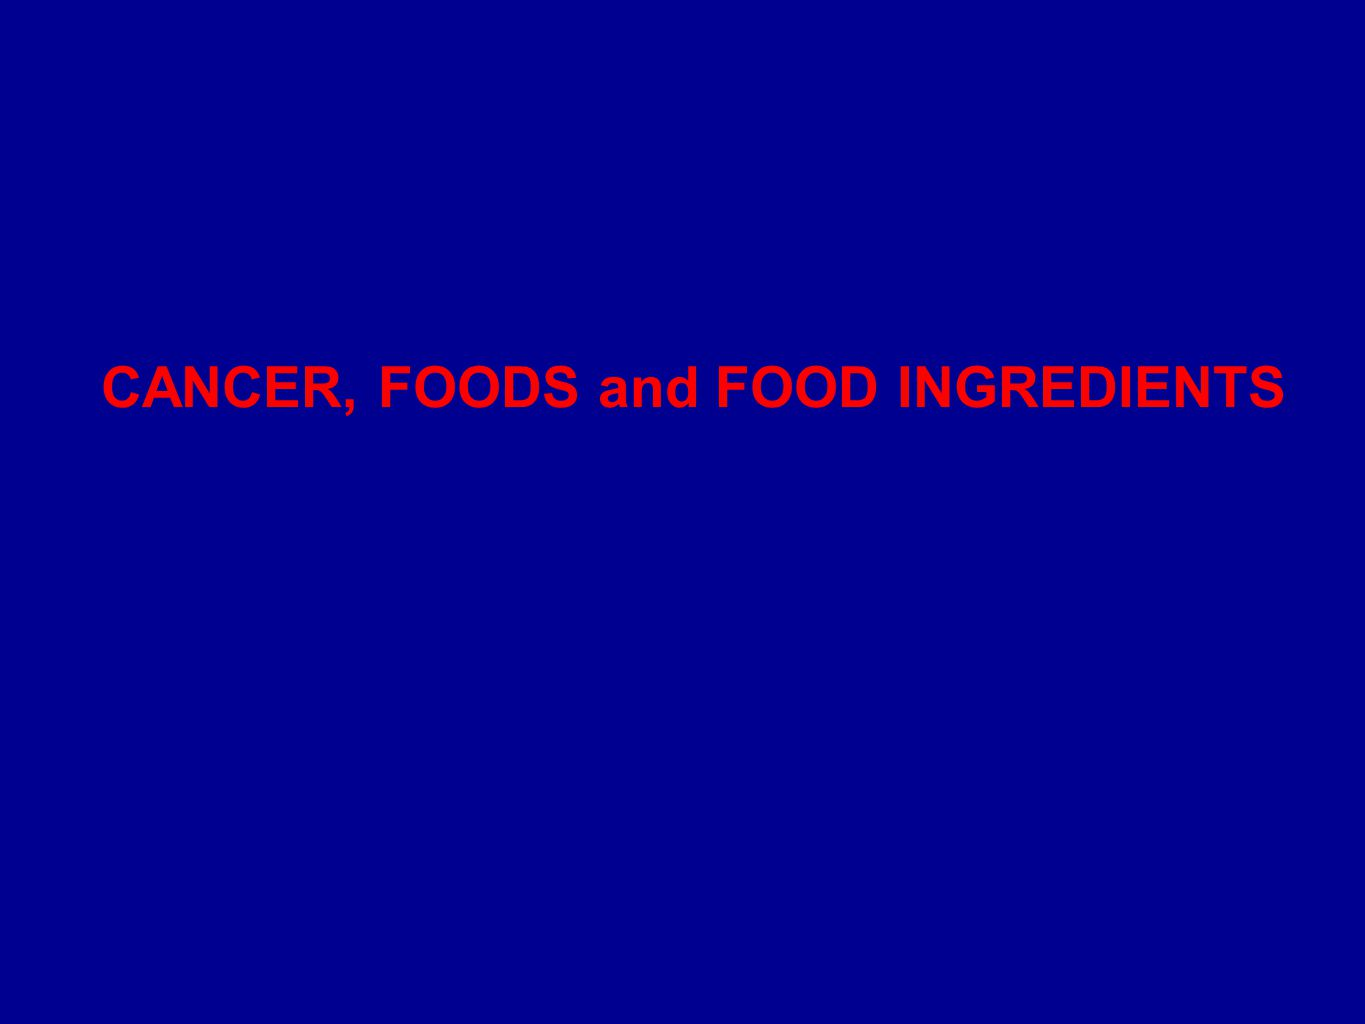 CANCER, FOODS and FOOD INGREDIENTS